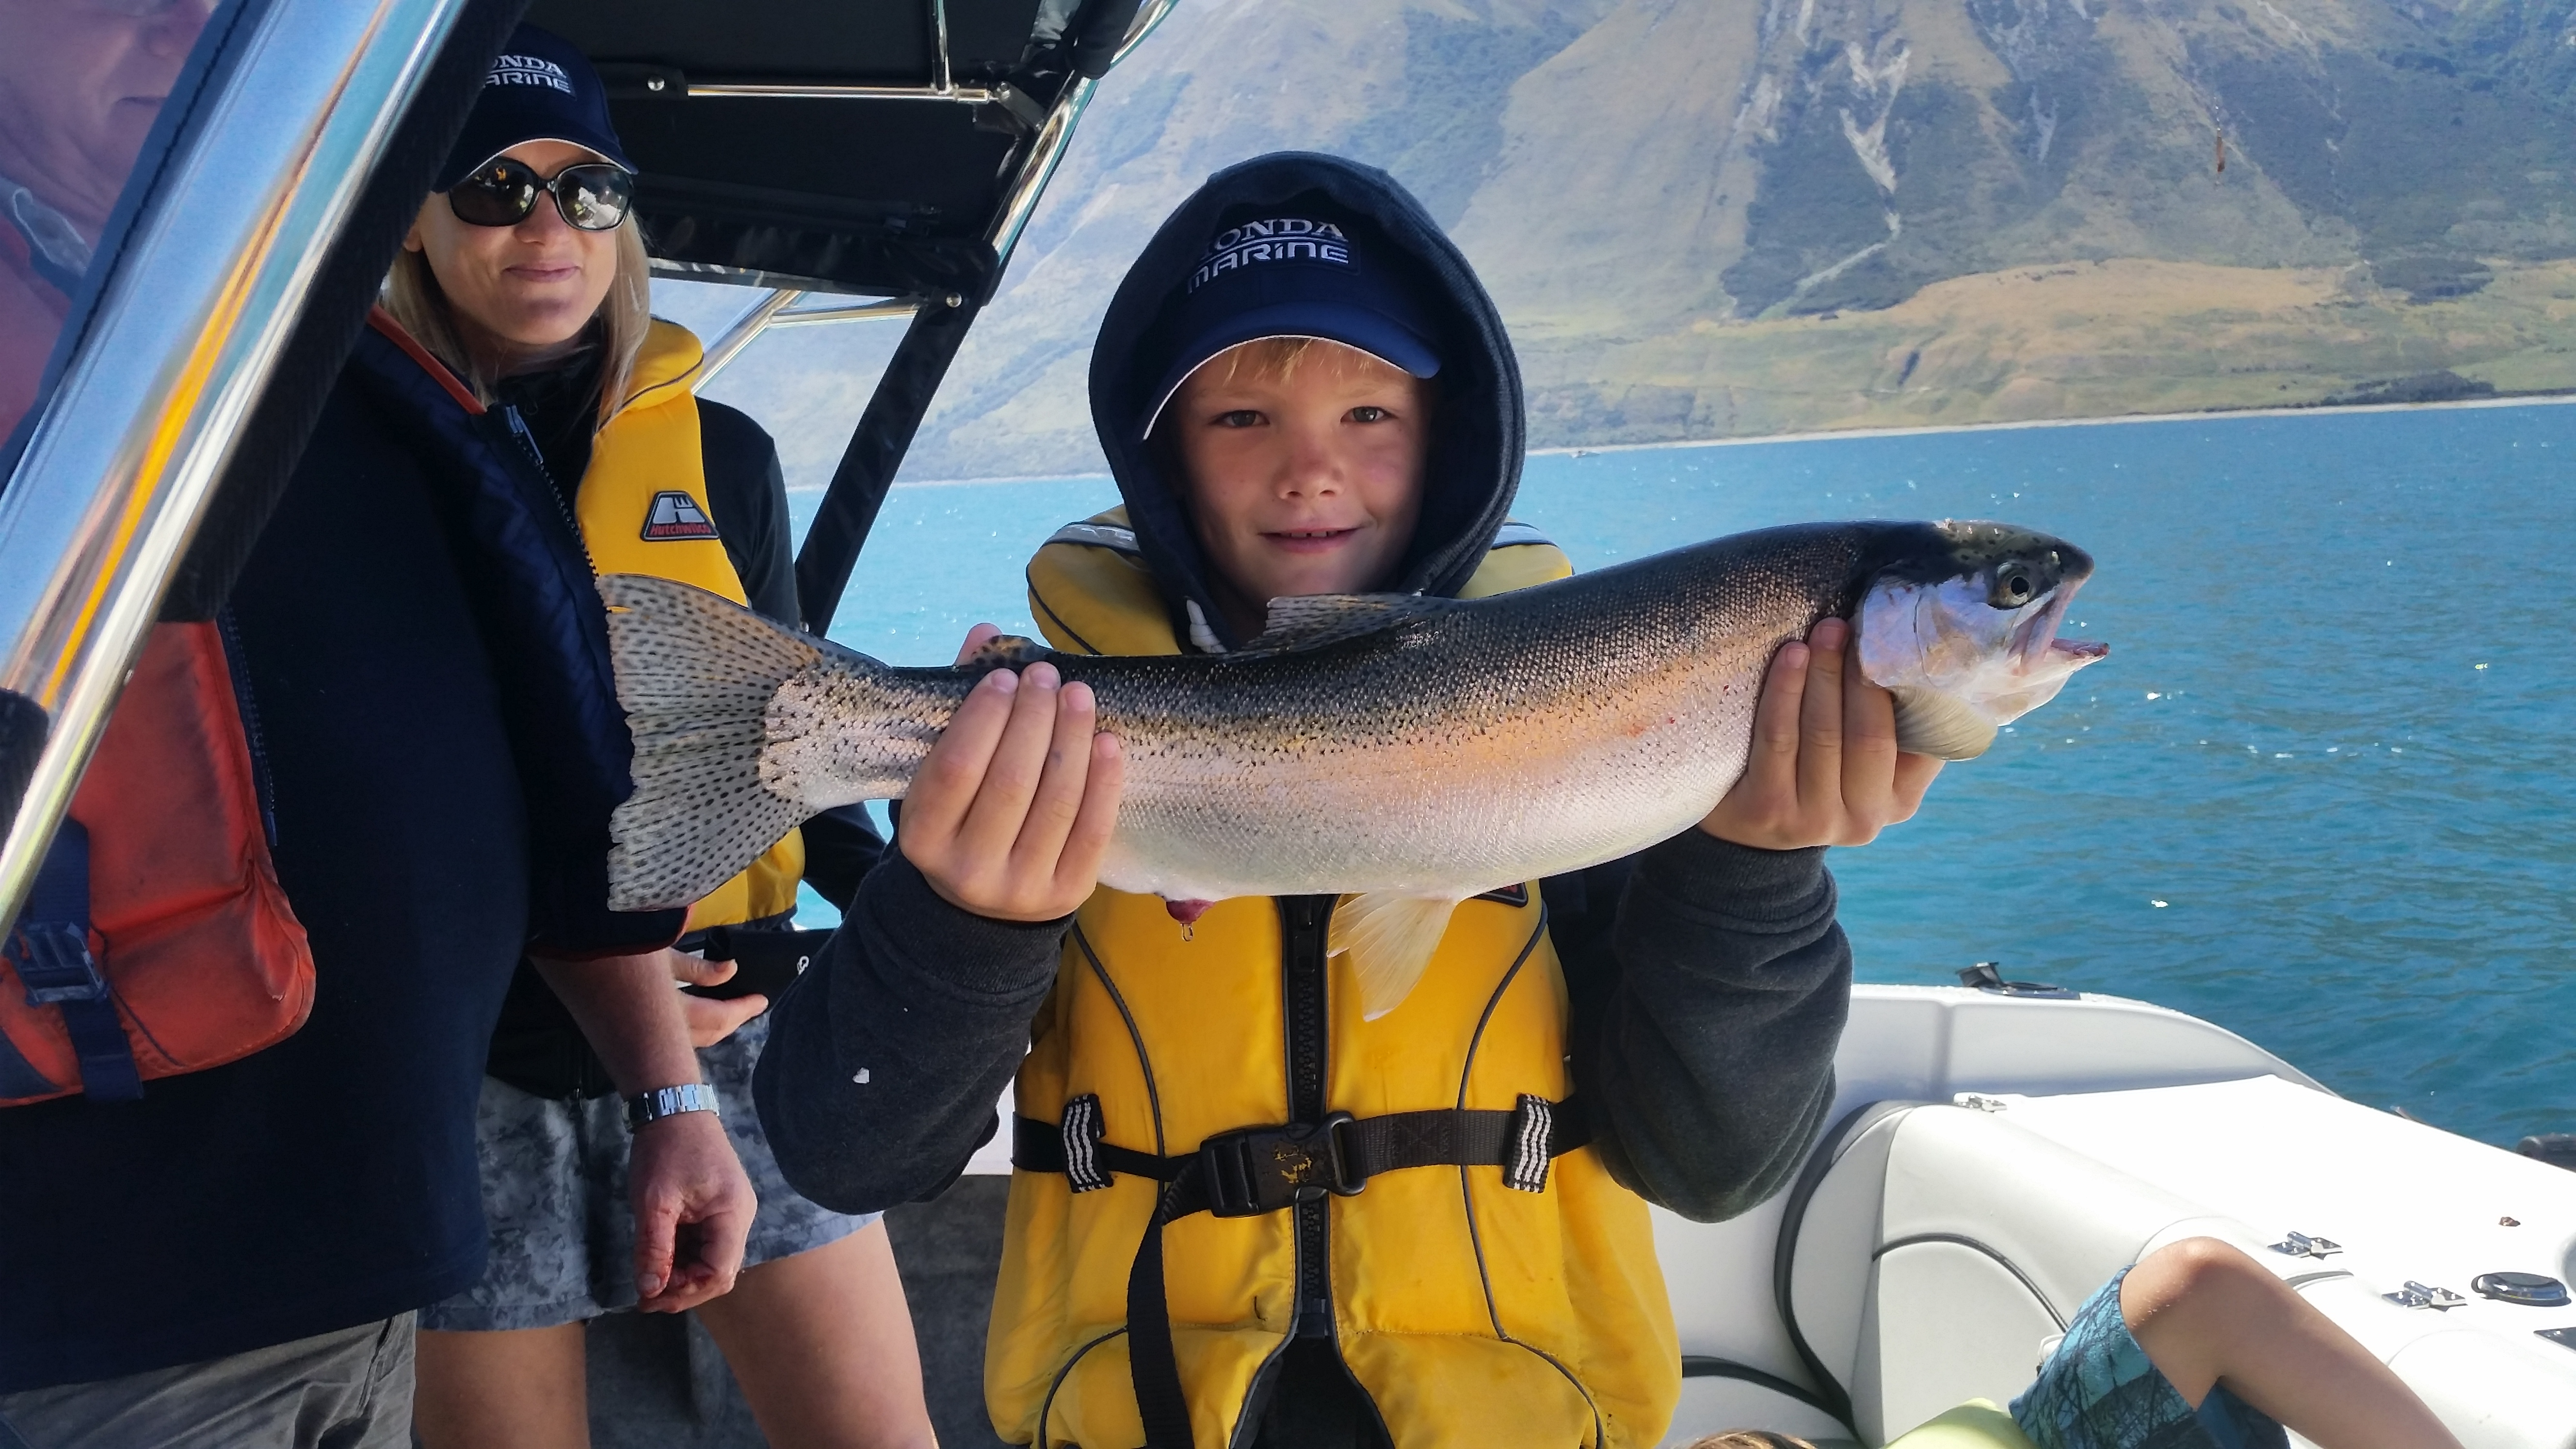 Harry Thomas Walker Leach aged 10 with 2.4kg rainbow trout 28 12 2017